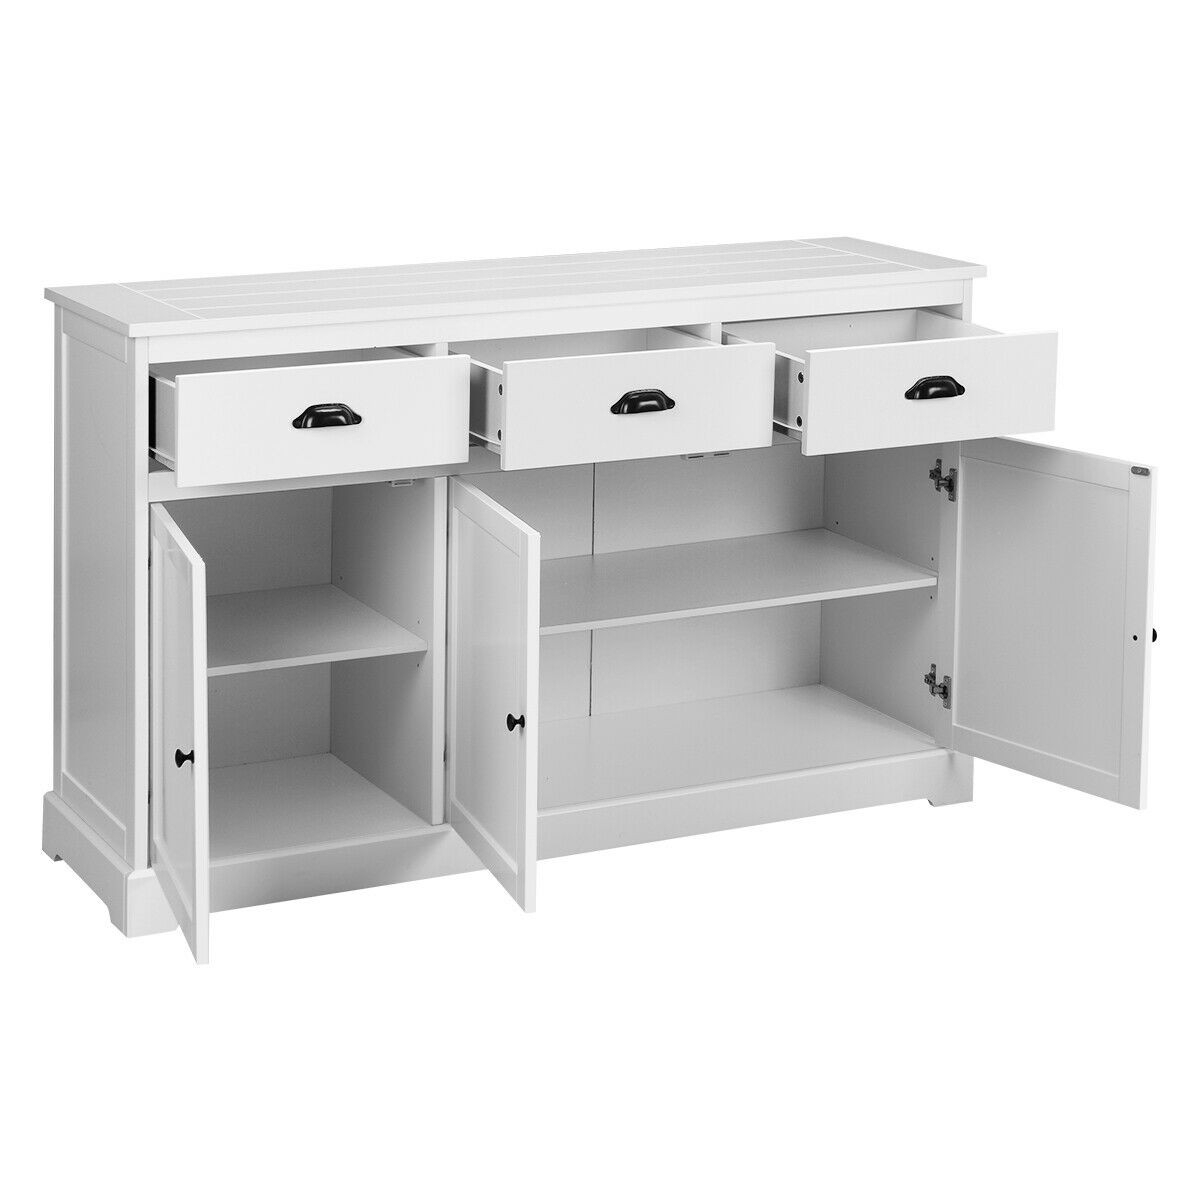 3 Drawers Console Table Sideboard Buffet Cabinet in 3-Drawer Black Storage Buffets (Image 1 of 30)